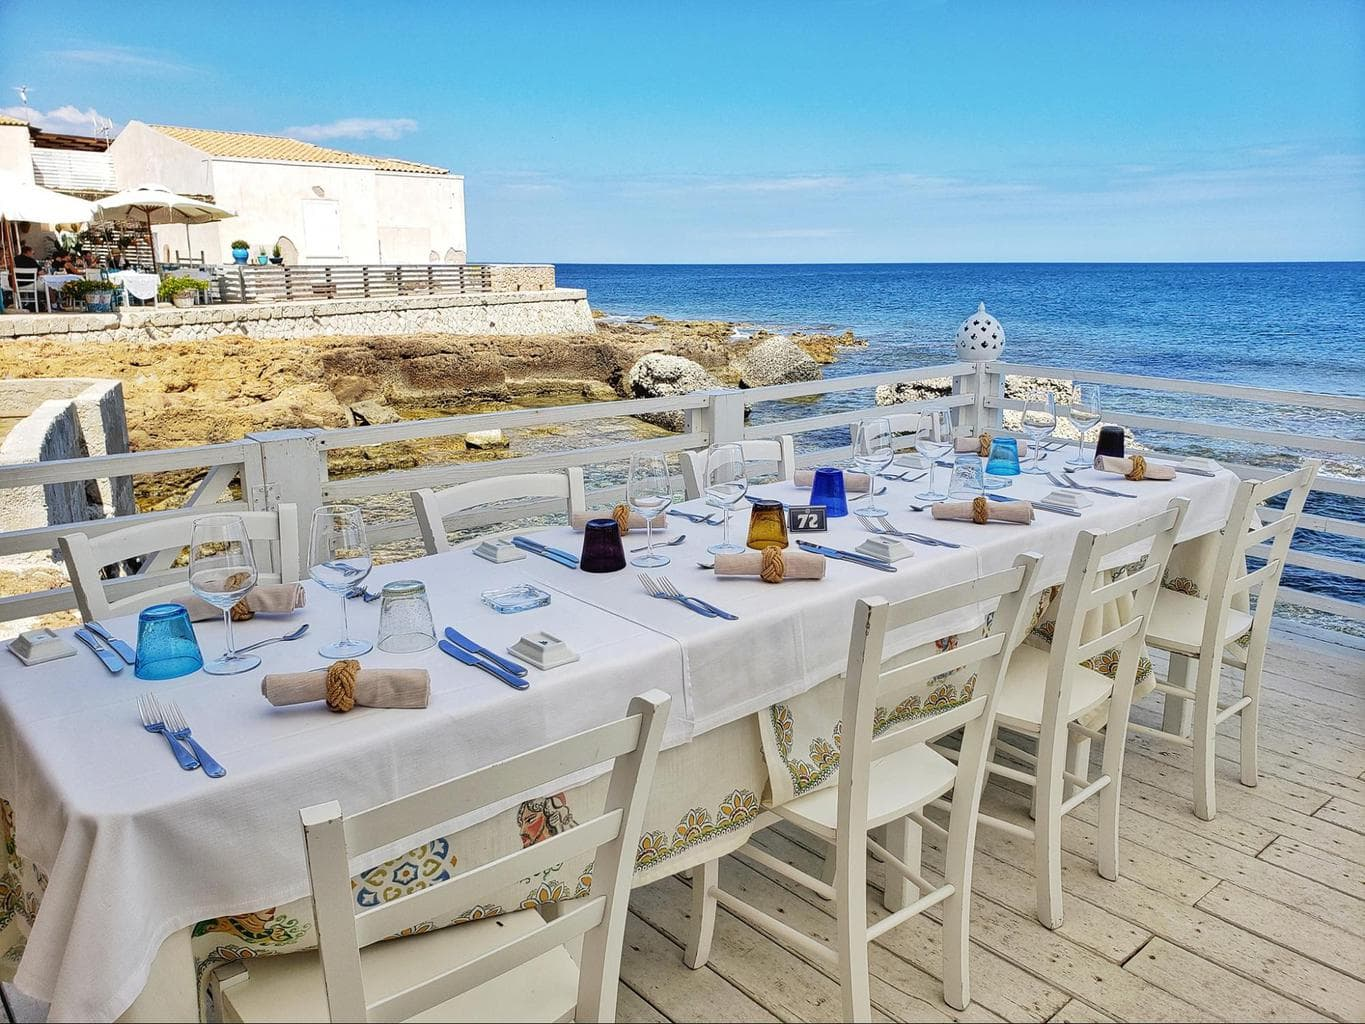 Lunch is ready on the Sicilian coast